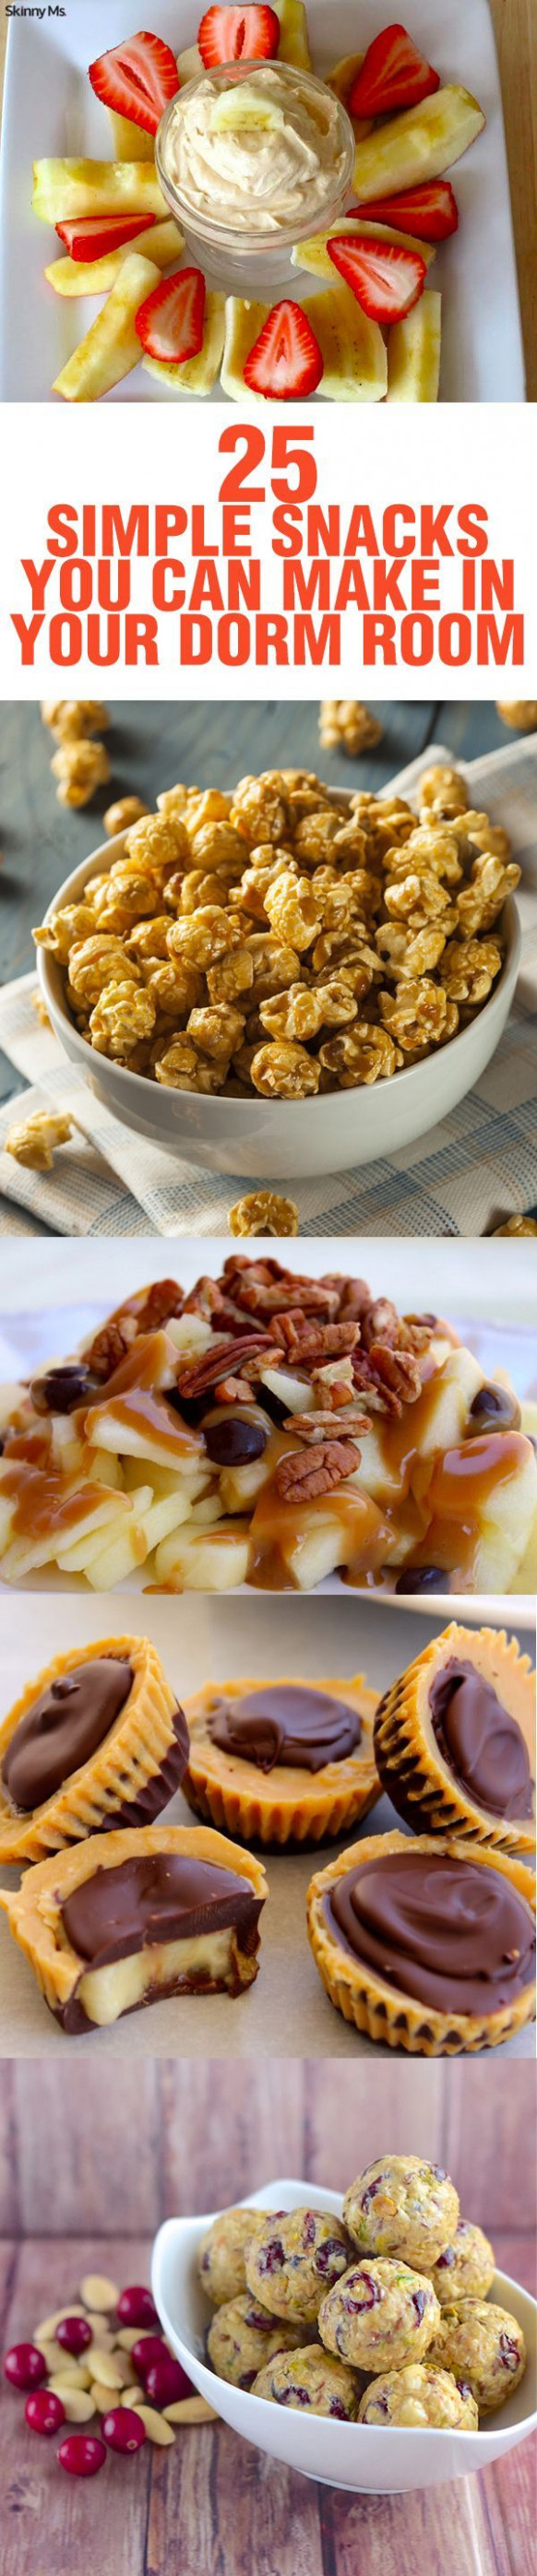 632 best Healthy Snacks for Adults images on Pinterest ...